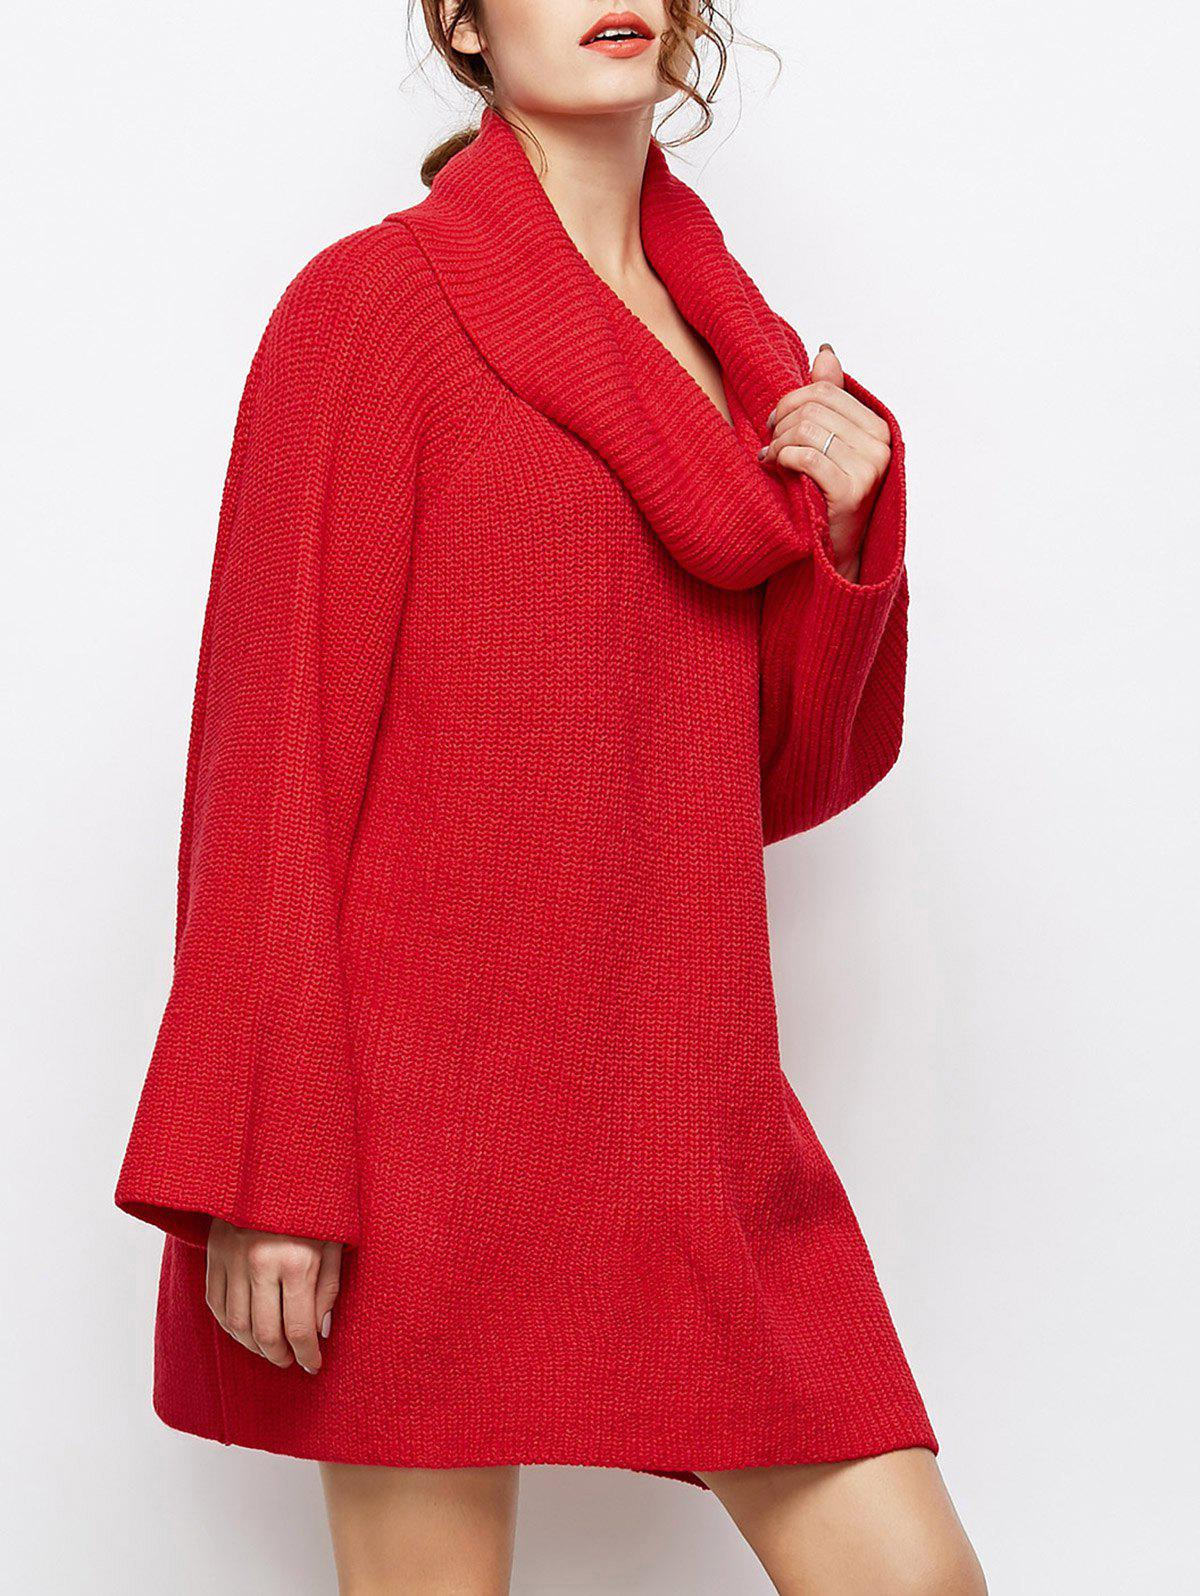 2018 Oversized Chunky Cowl Neck Long Sweater RED M In ...